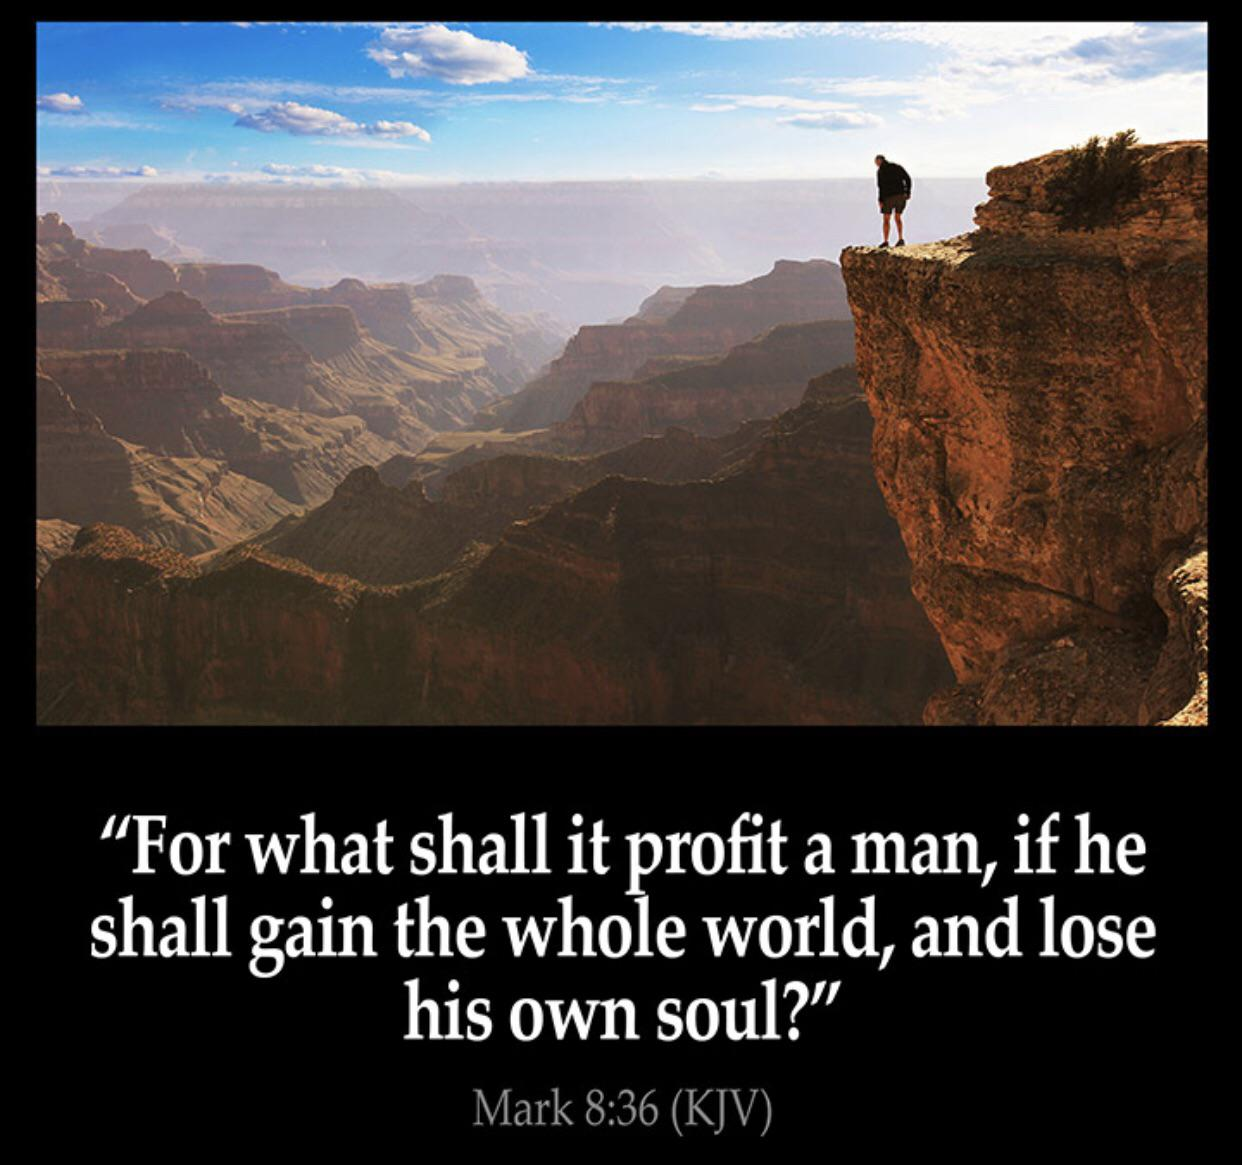 """For what shall it profit a man, if he shall gain the whole world, and lose his own soul?"" – Mark 8:36 [720 x 720]"